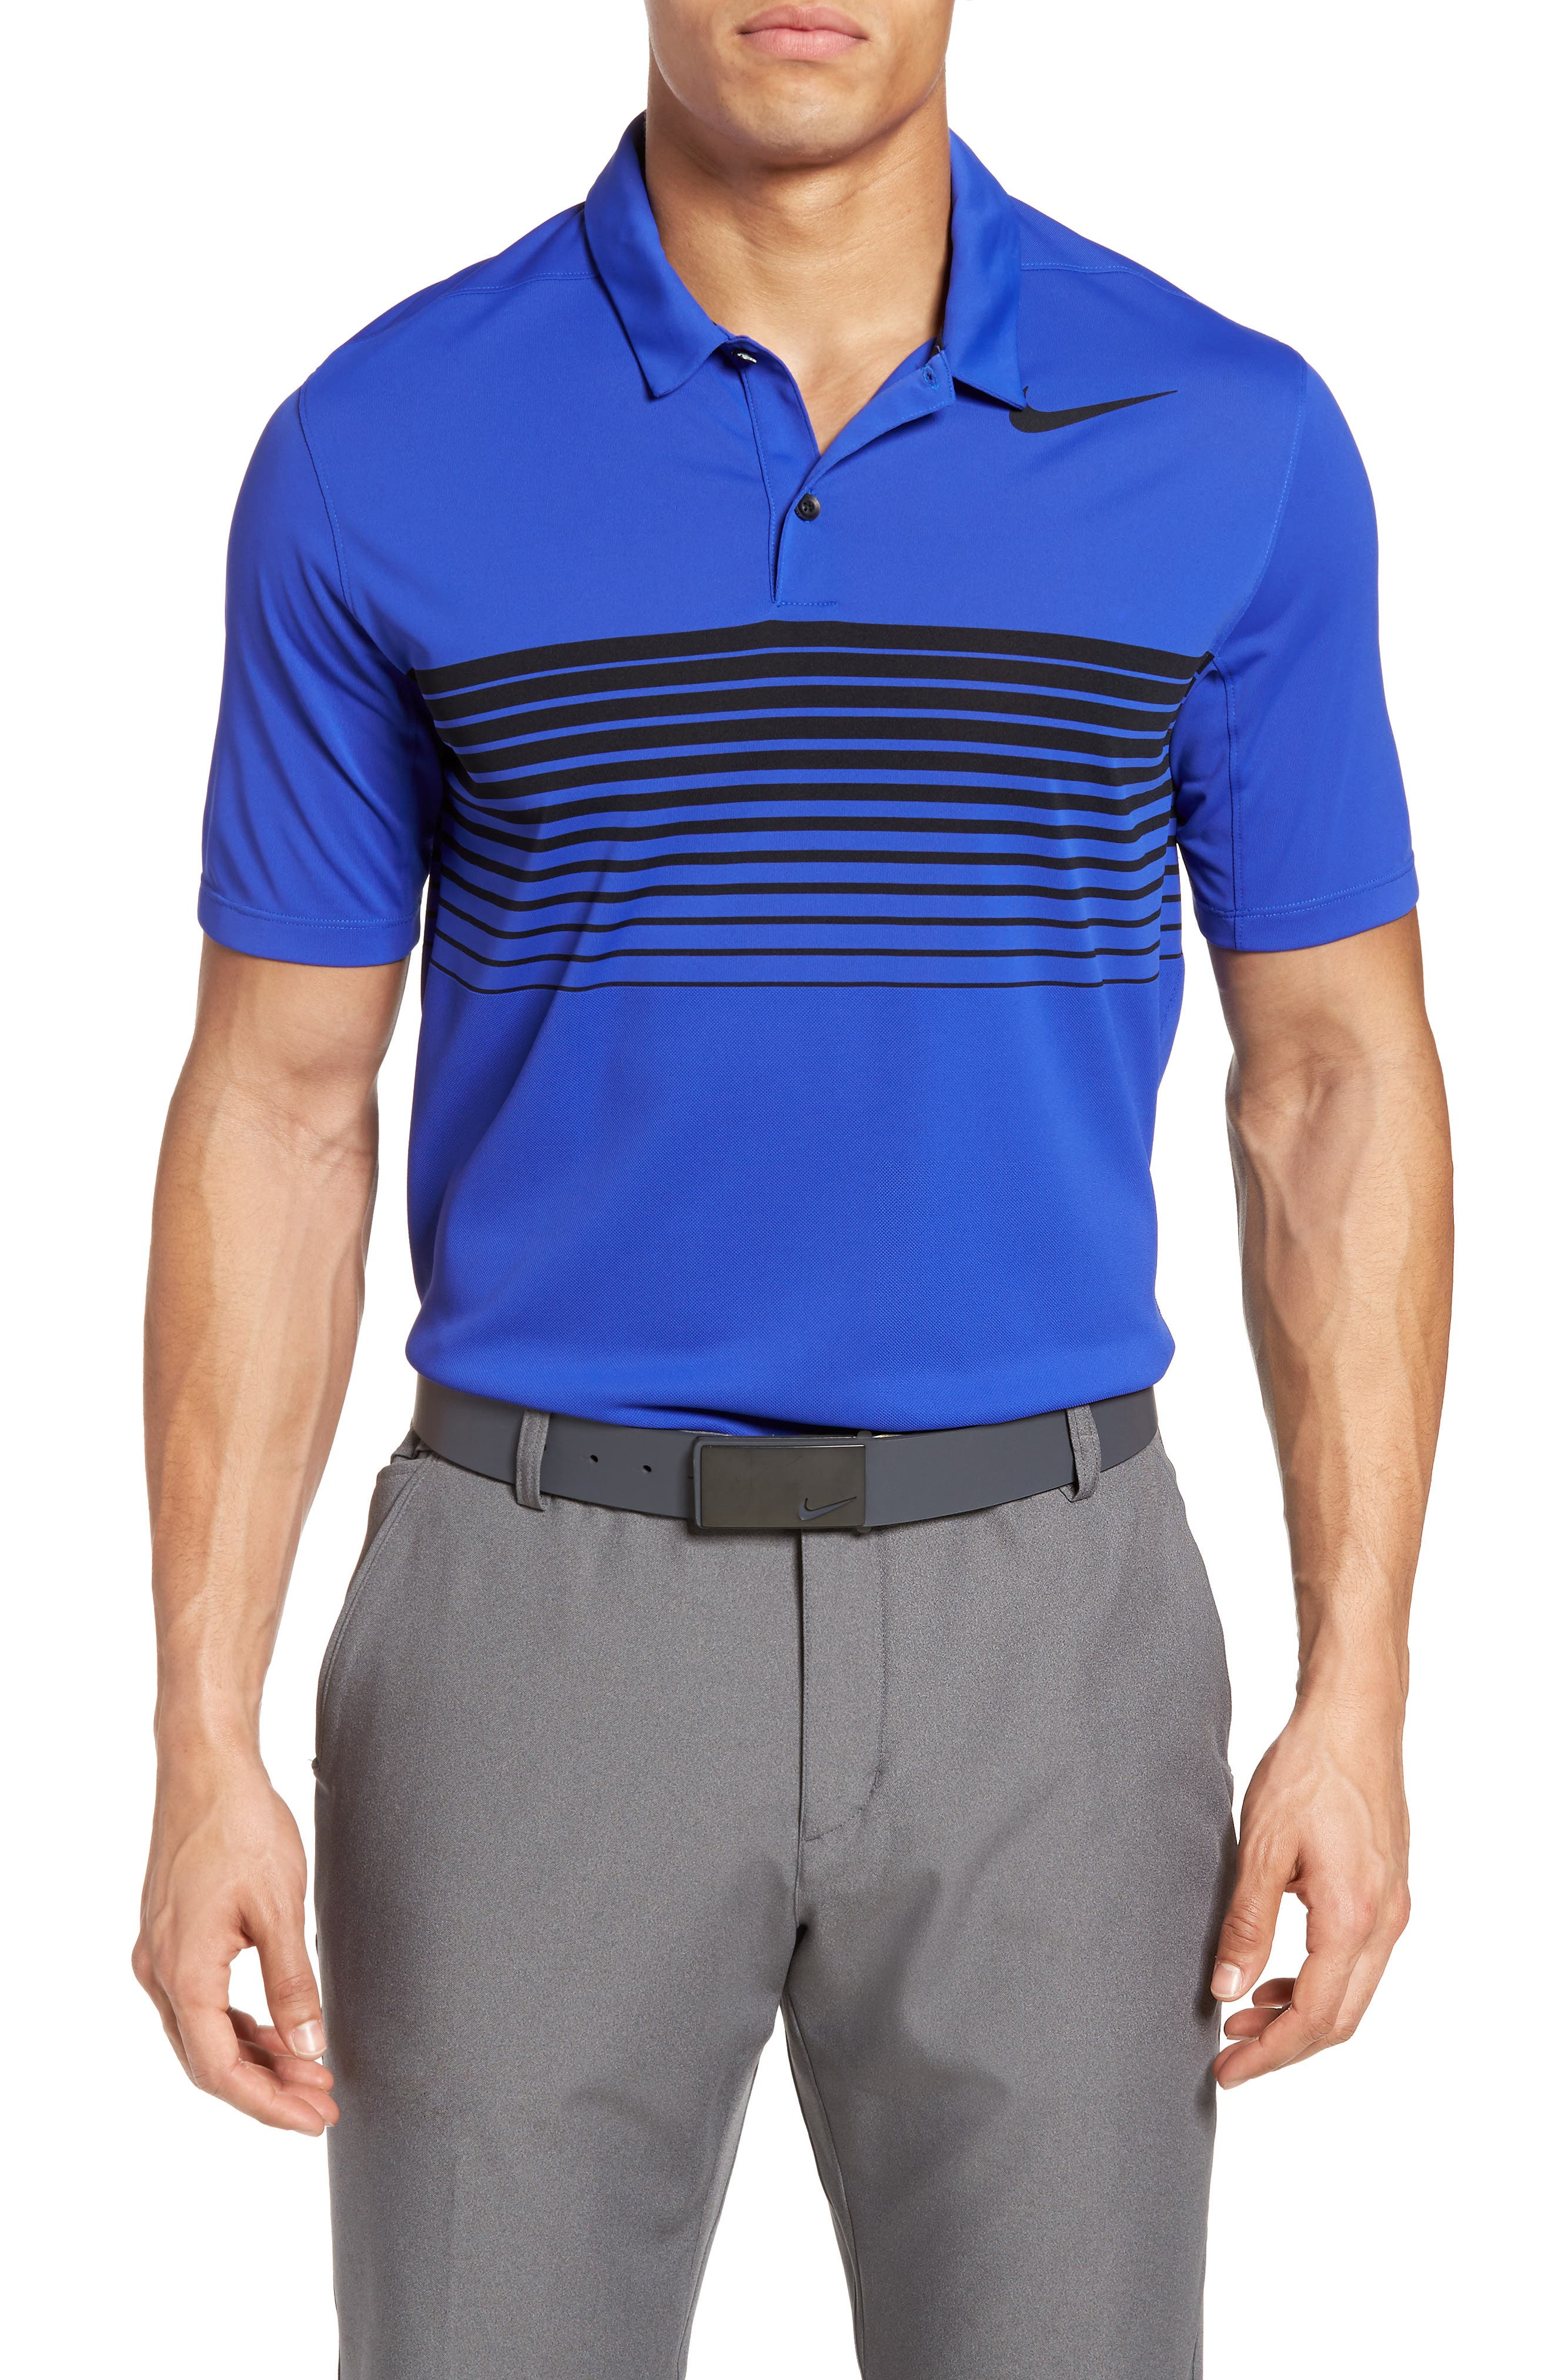 Nike Mobility Speed Stripe Stretch Golf Polo